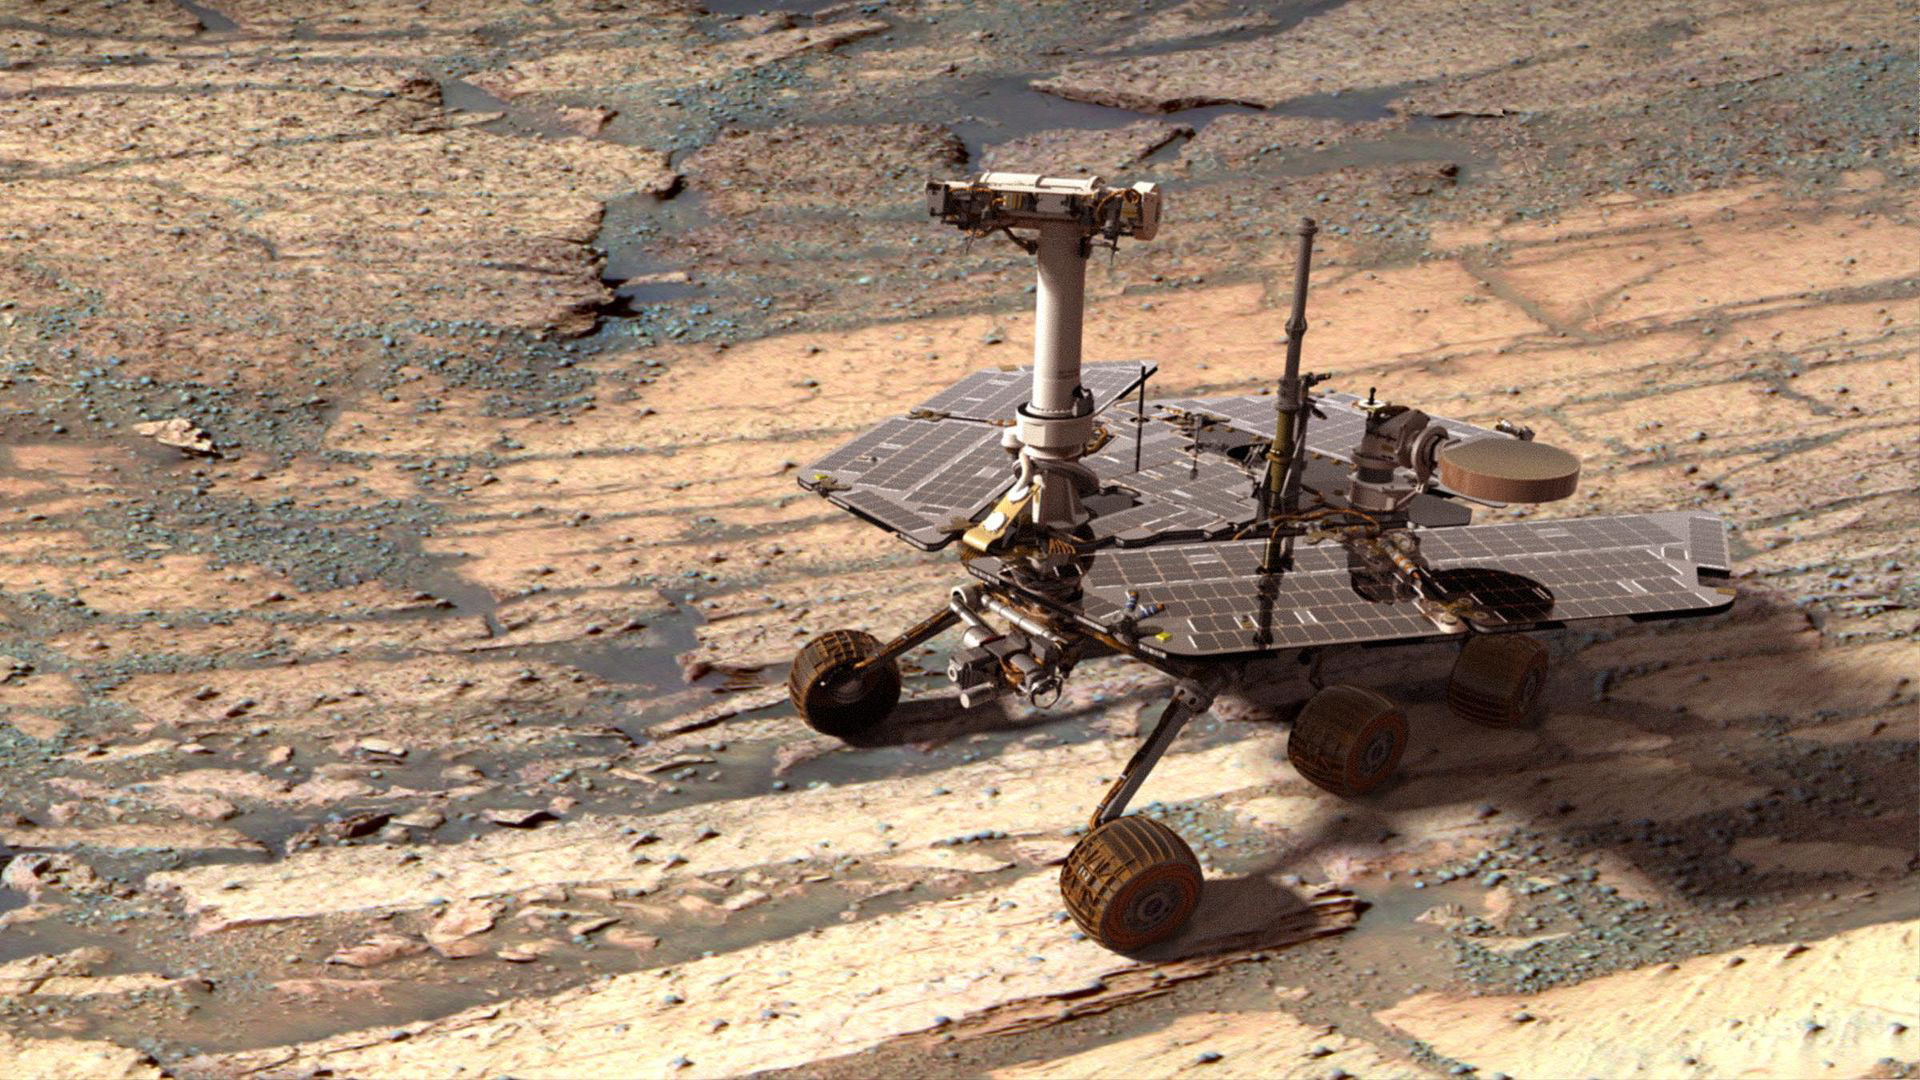 nasa mars exploration rover mission - photo #5